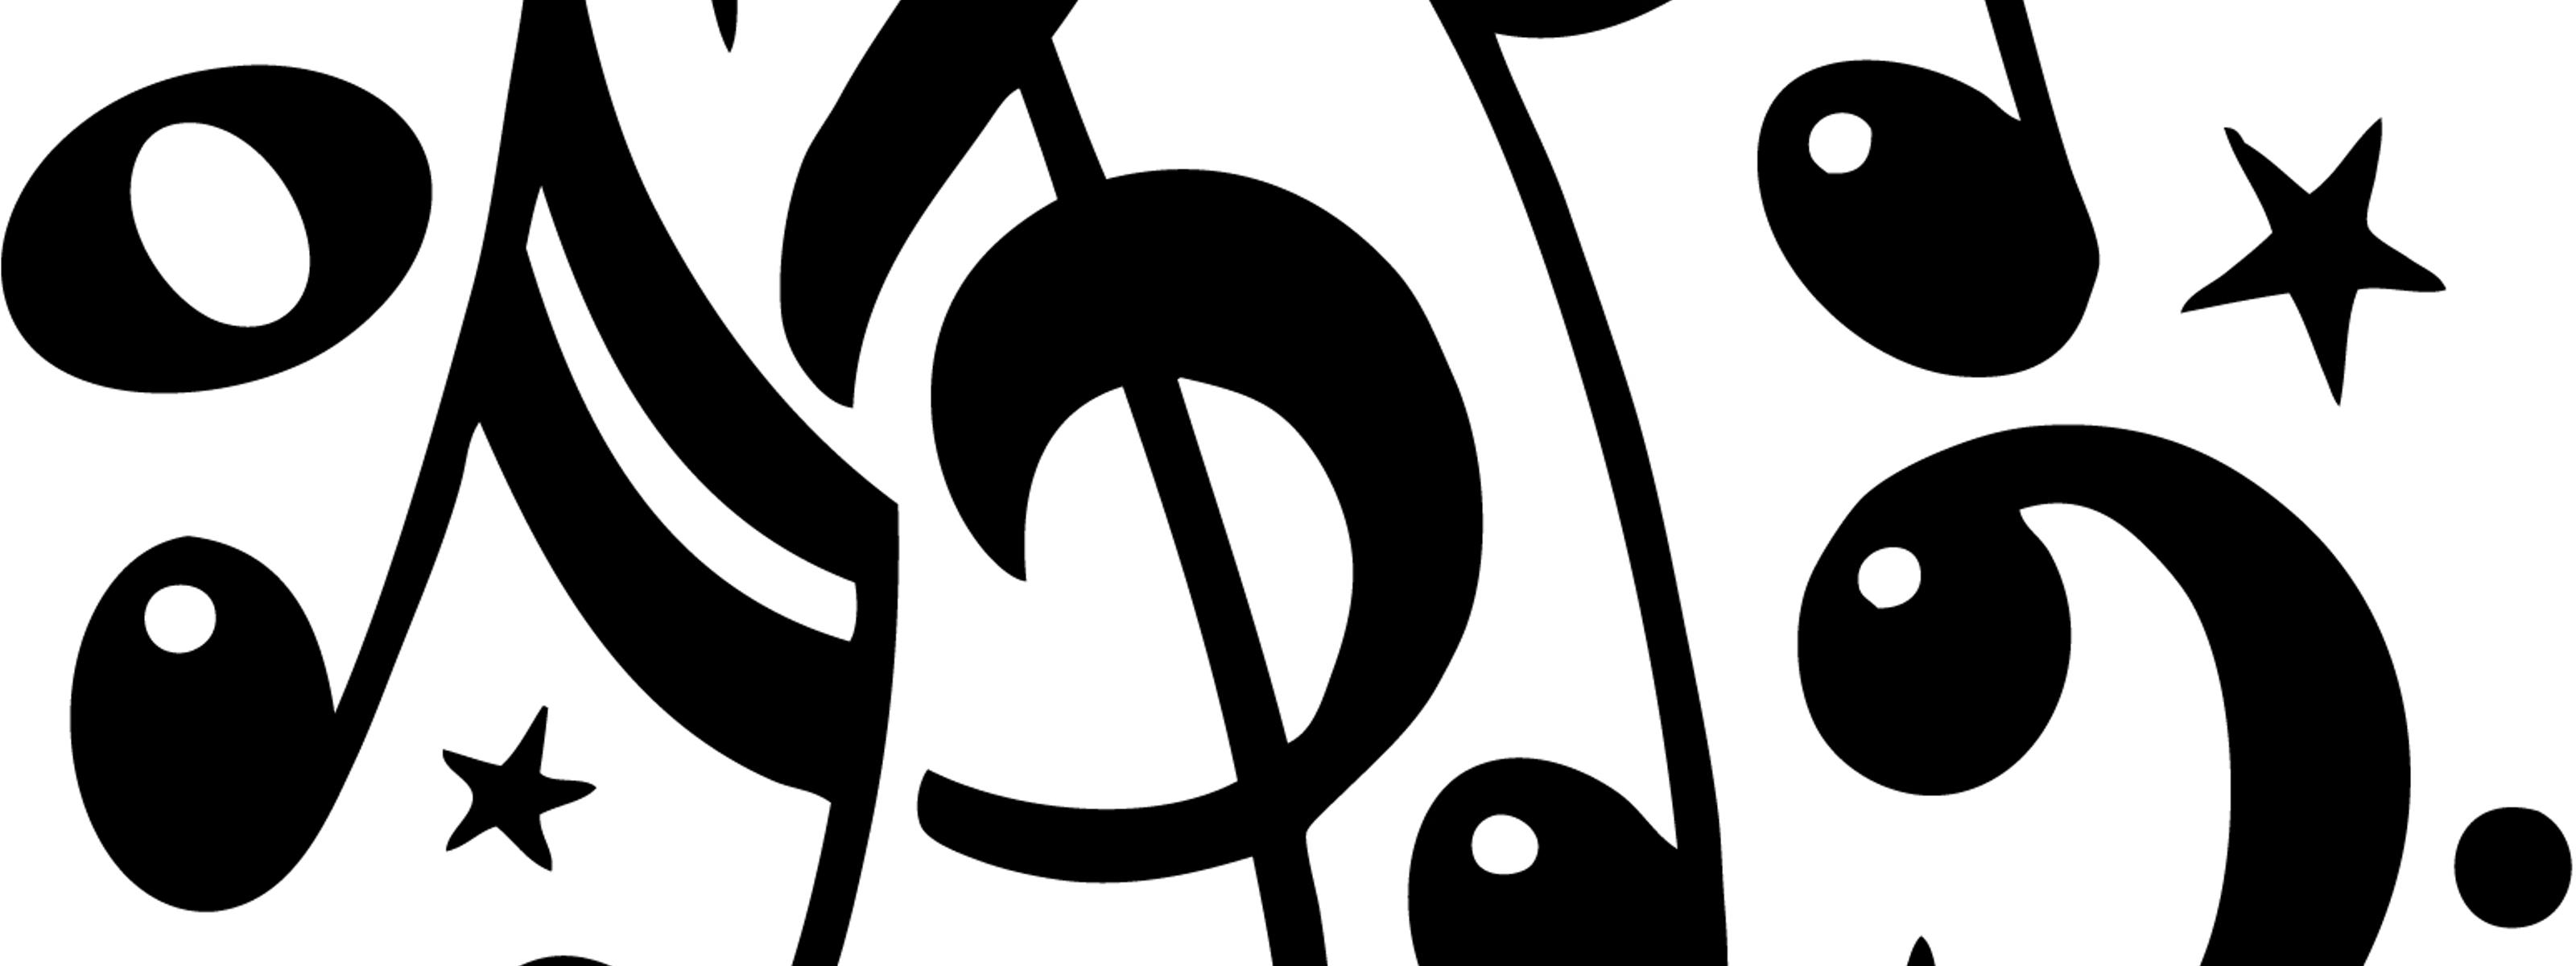 Download Wallpaper 3200x1200 Black Musical Notes And Sol Key On White Background